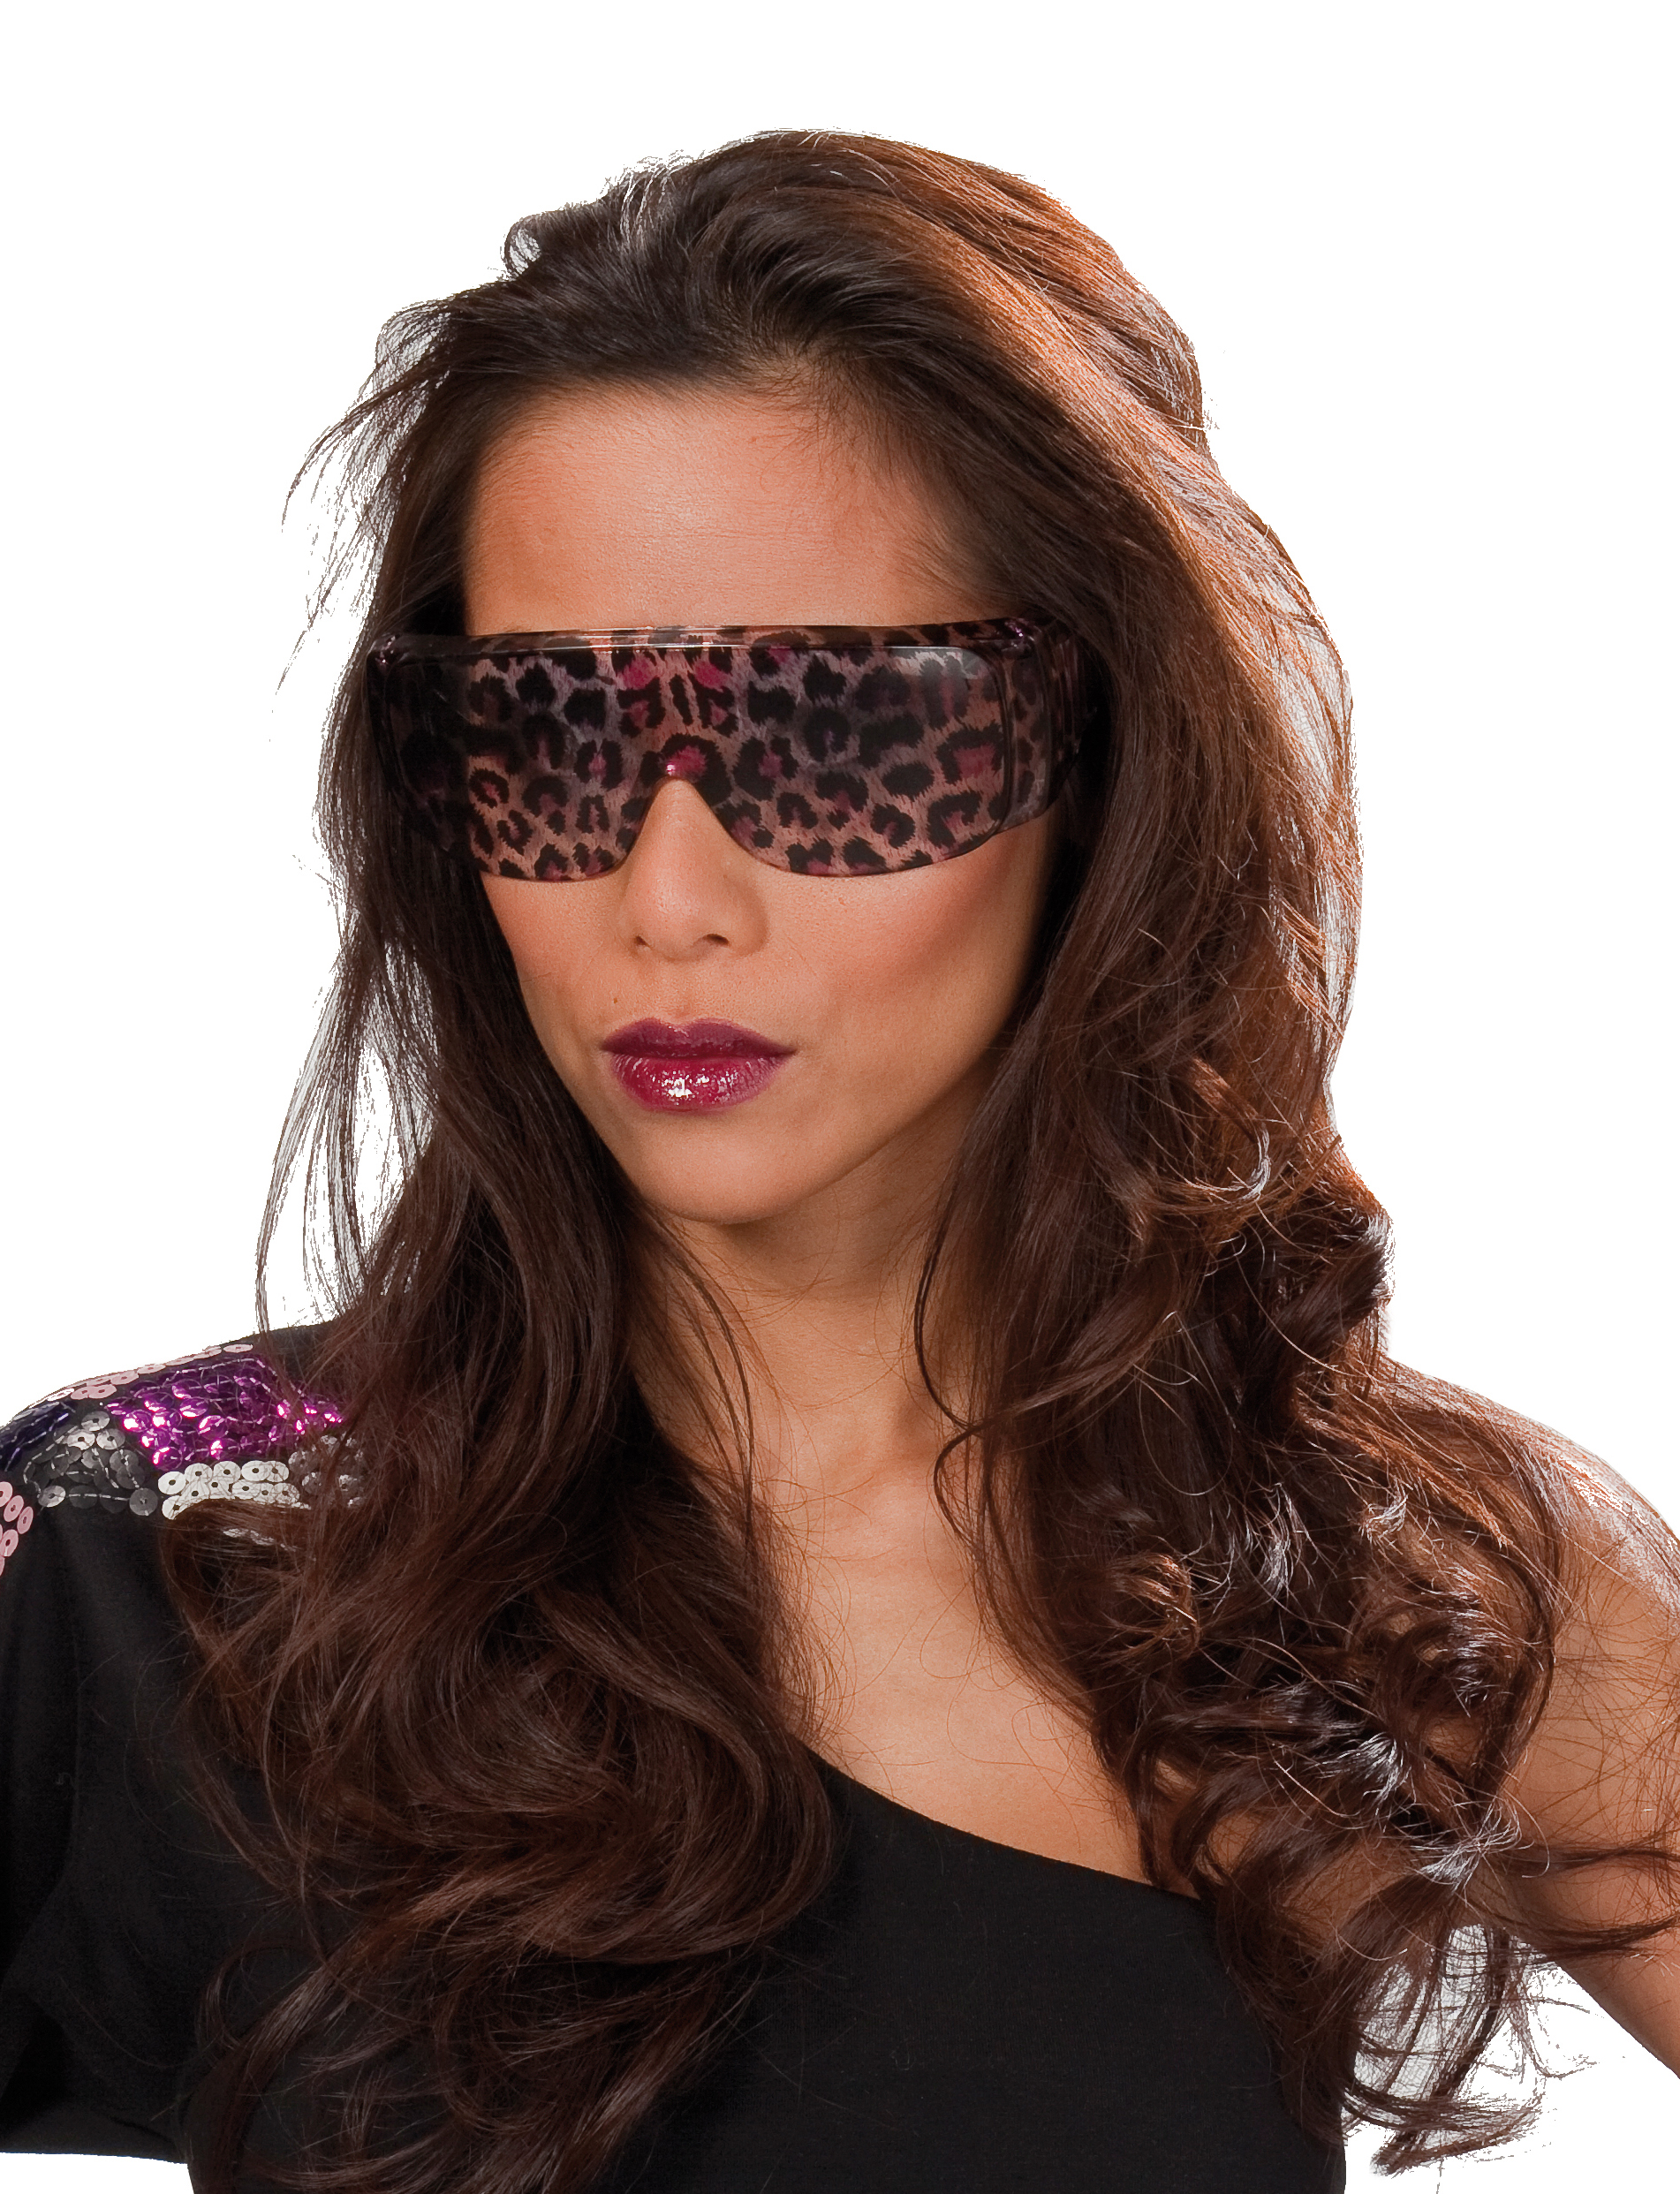 Brille Leopard Leo braun-pink , Motto Party Karneval Damen, Angebot